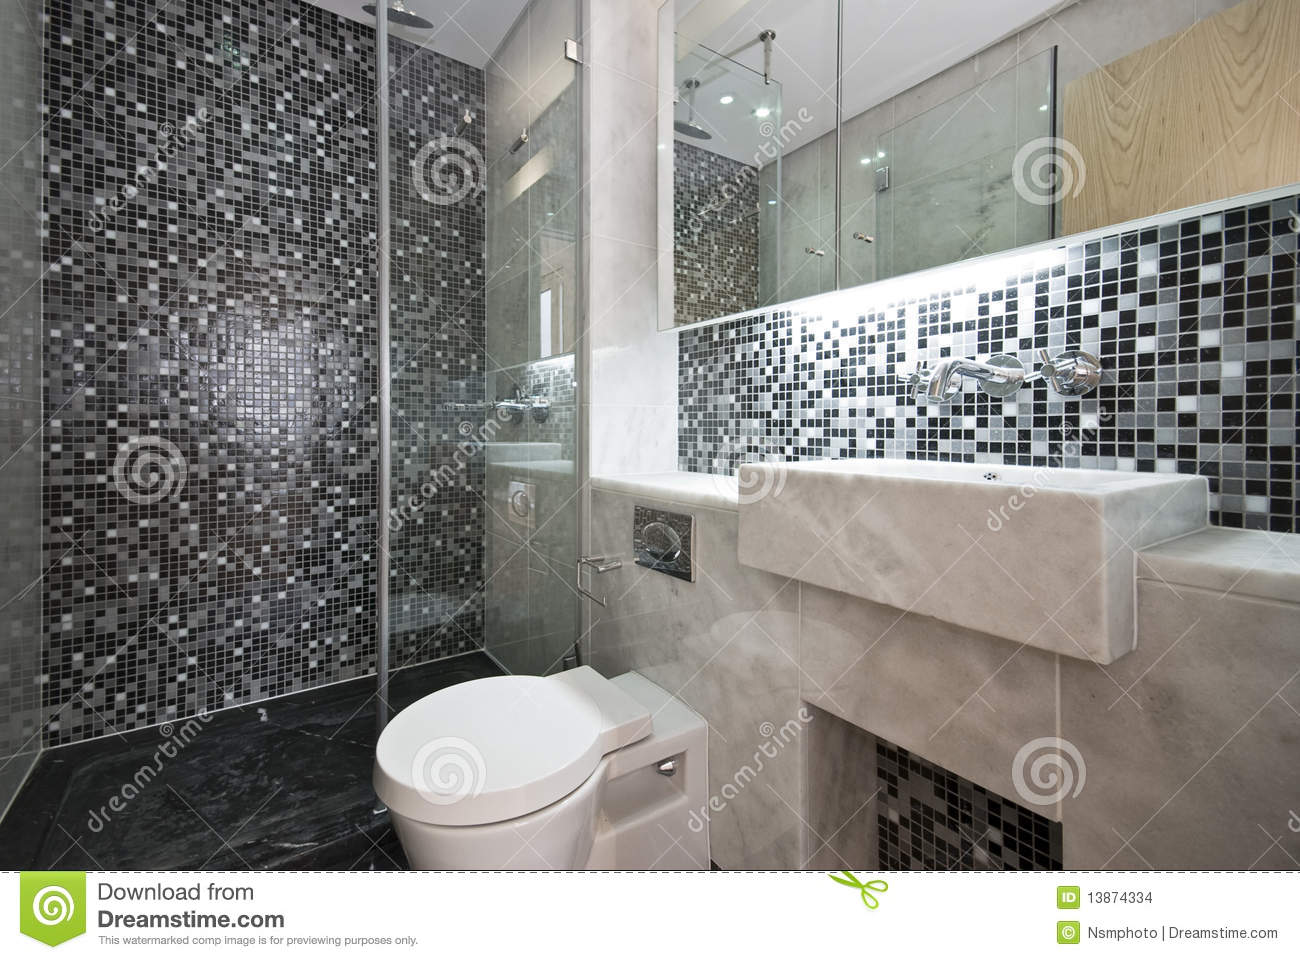 Meuble Sdb Brico Depot Luxurious Bathroom In Black And White Stock Images - Image